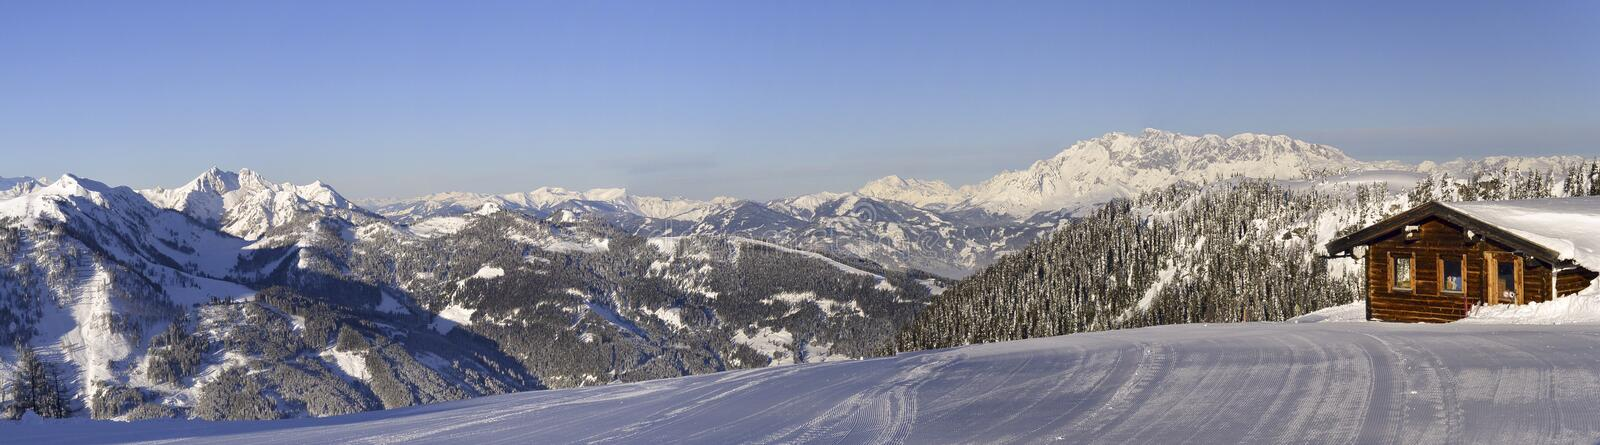 View to The Alps from summit of Shuttleberg, Austria. Panoramic view from summit of Shuttleberg, Ski amade ski resort, Austria royalty free stock photos